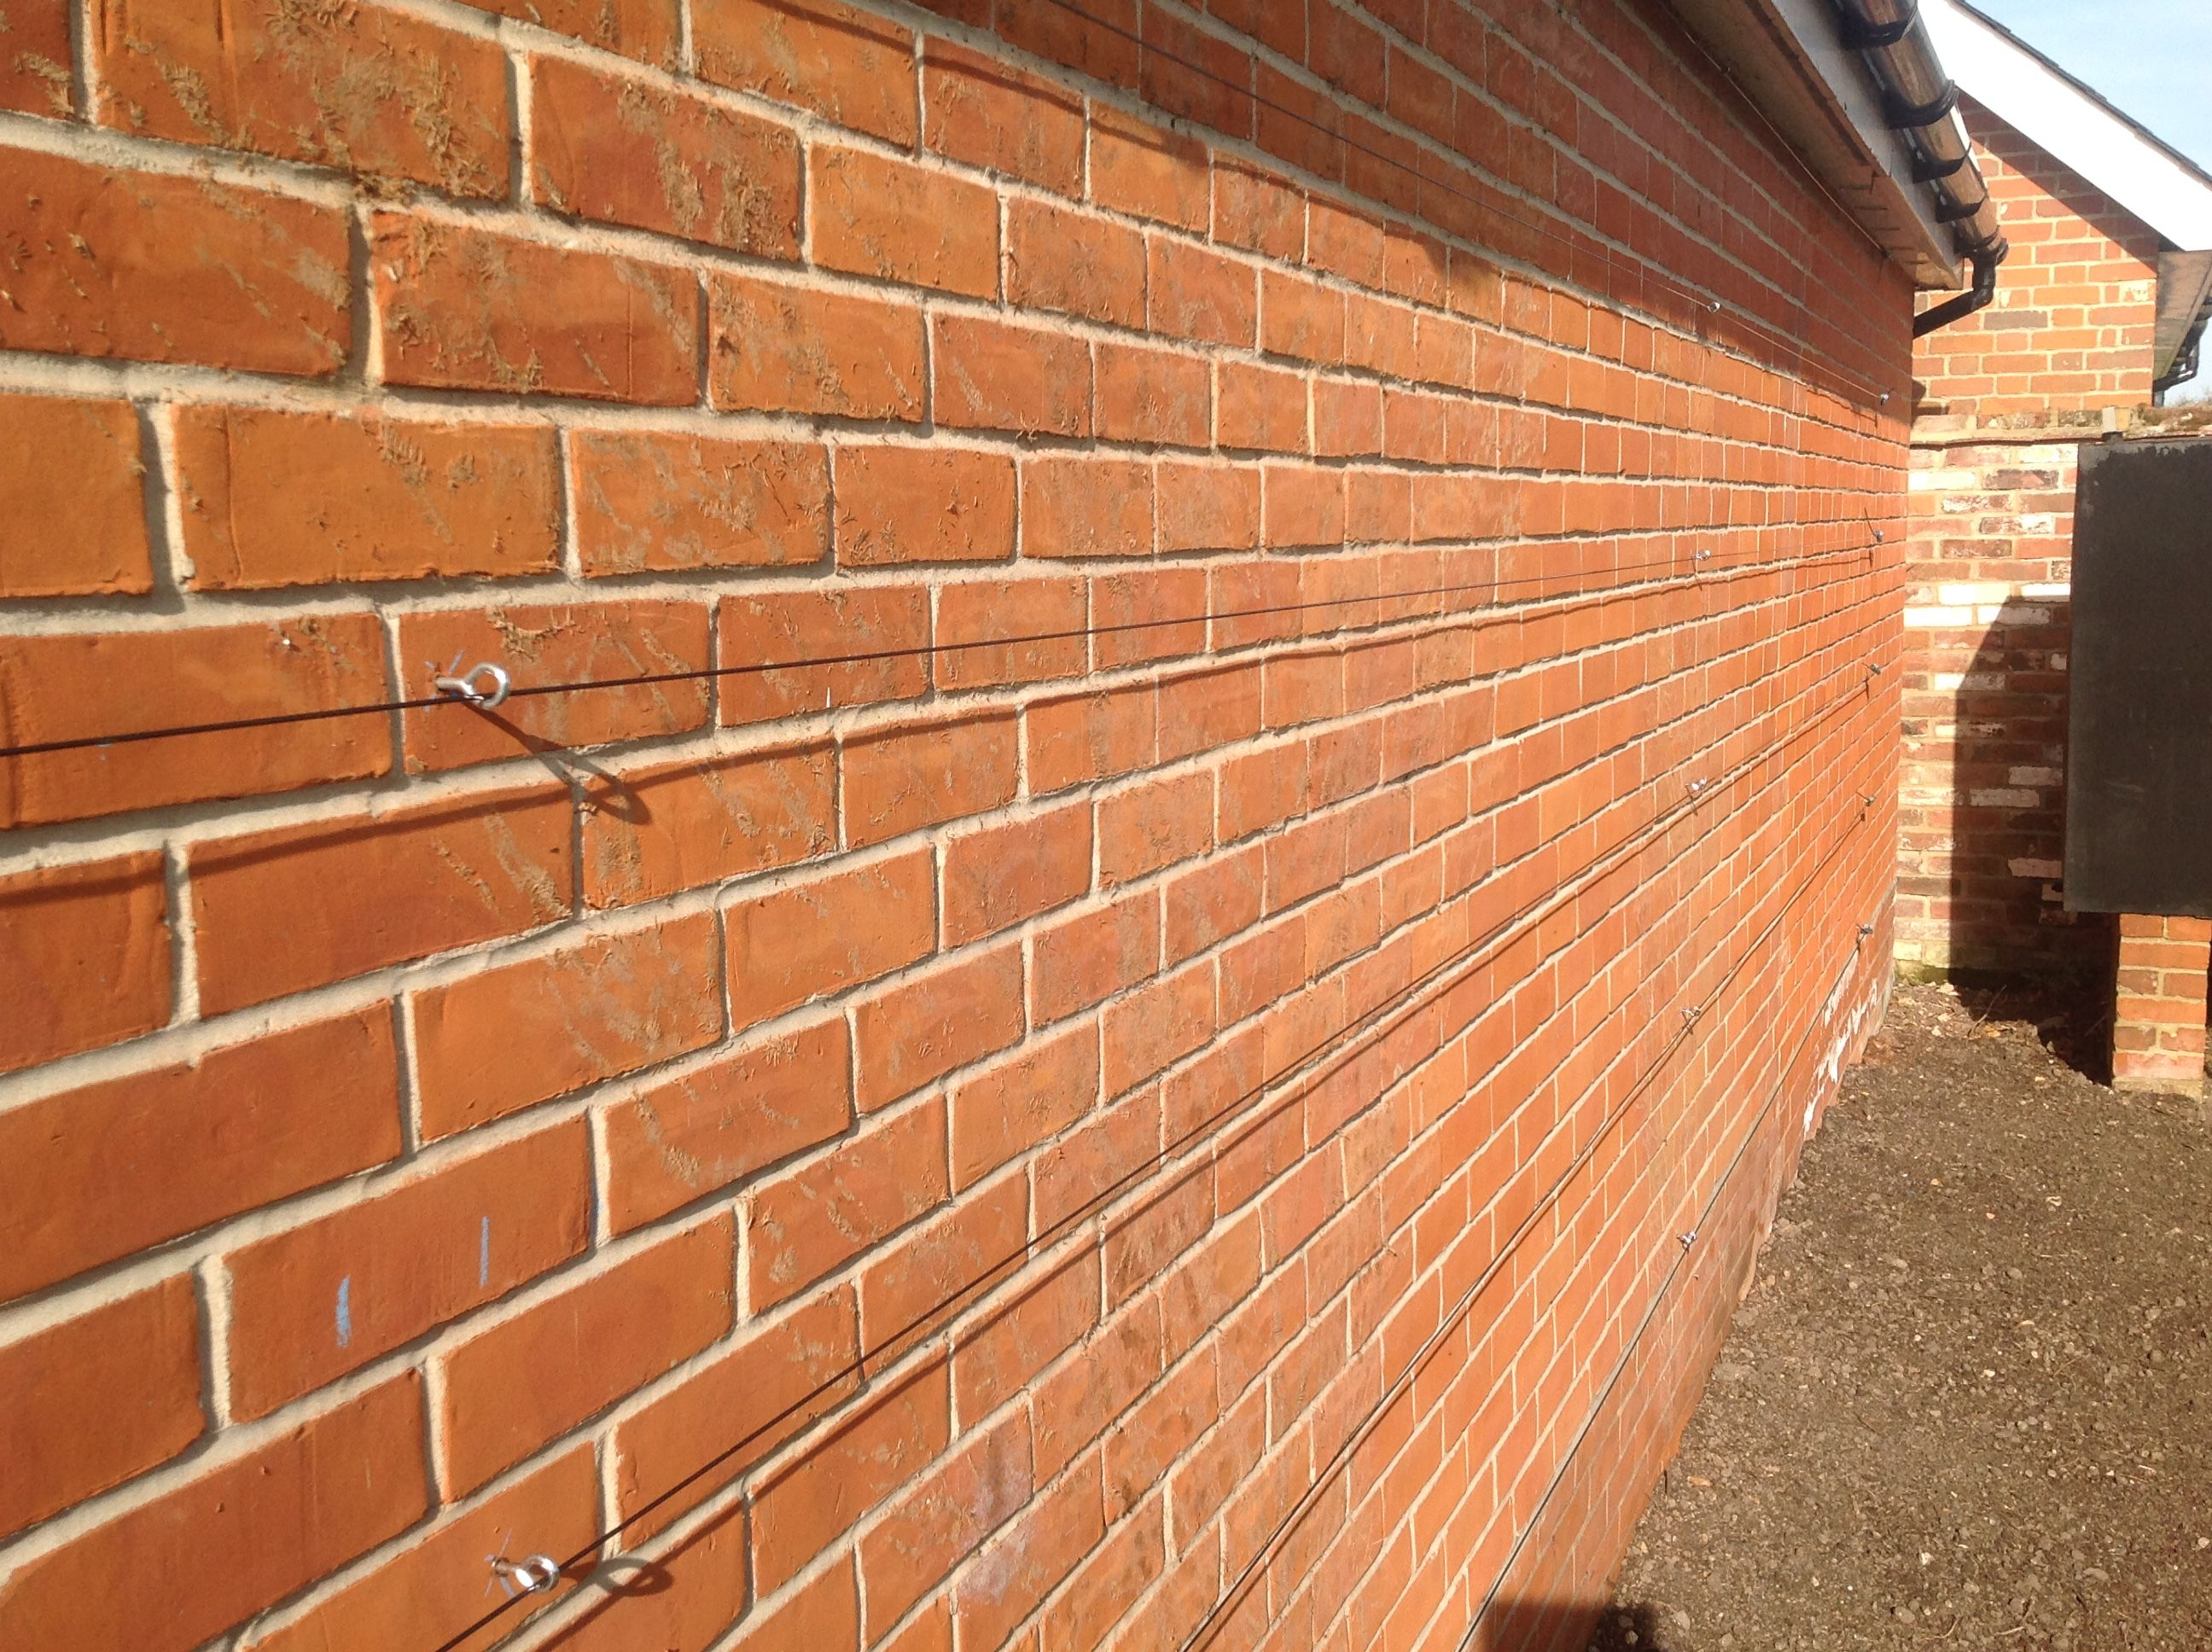 Installing A Gripple Trellis Kit On A Brick Wall